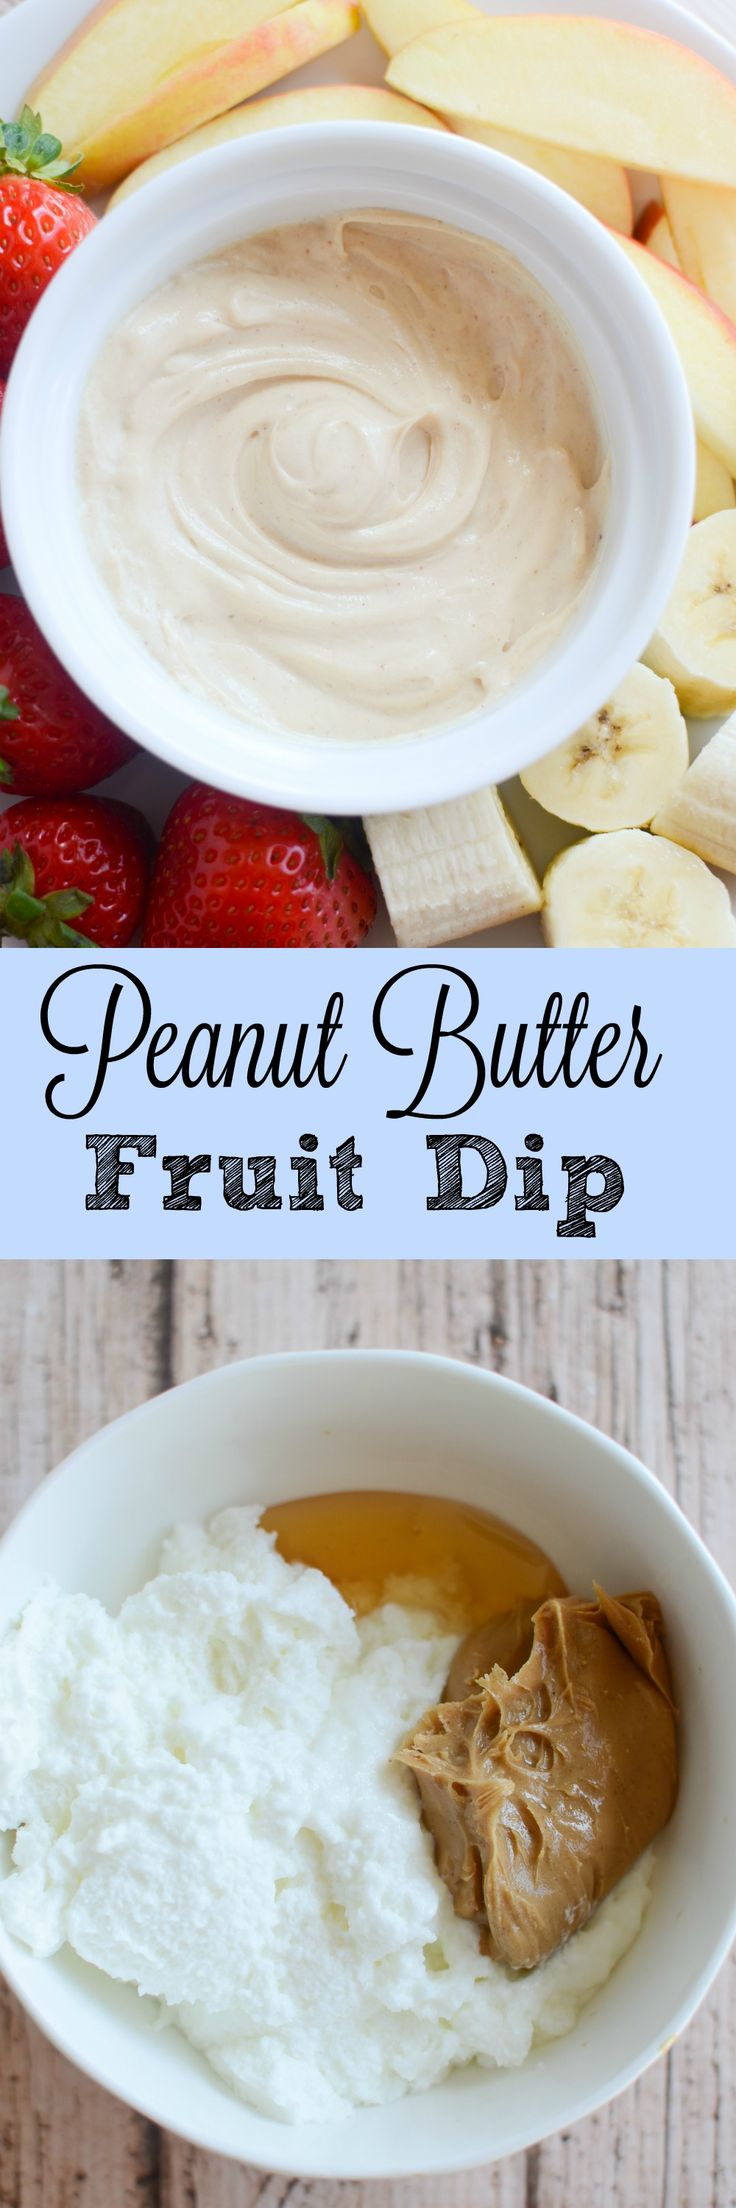 Peanut Butter Fruit Dip - healthy and delicious fruit dip with only 3 ingredients!